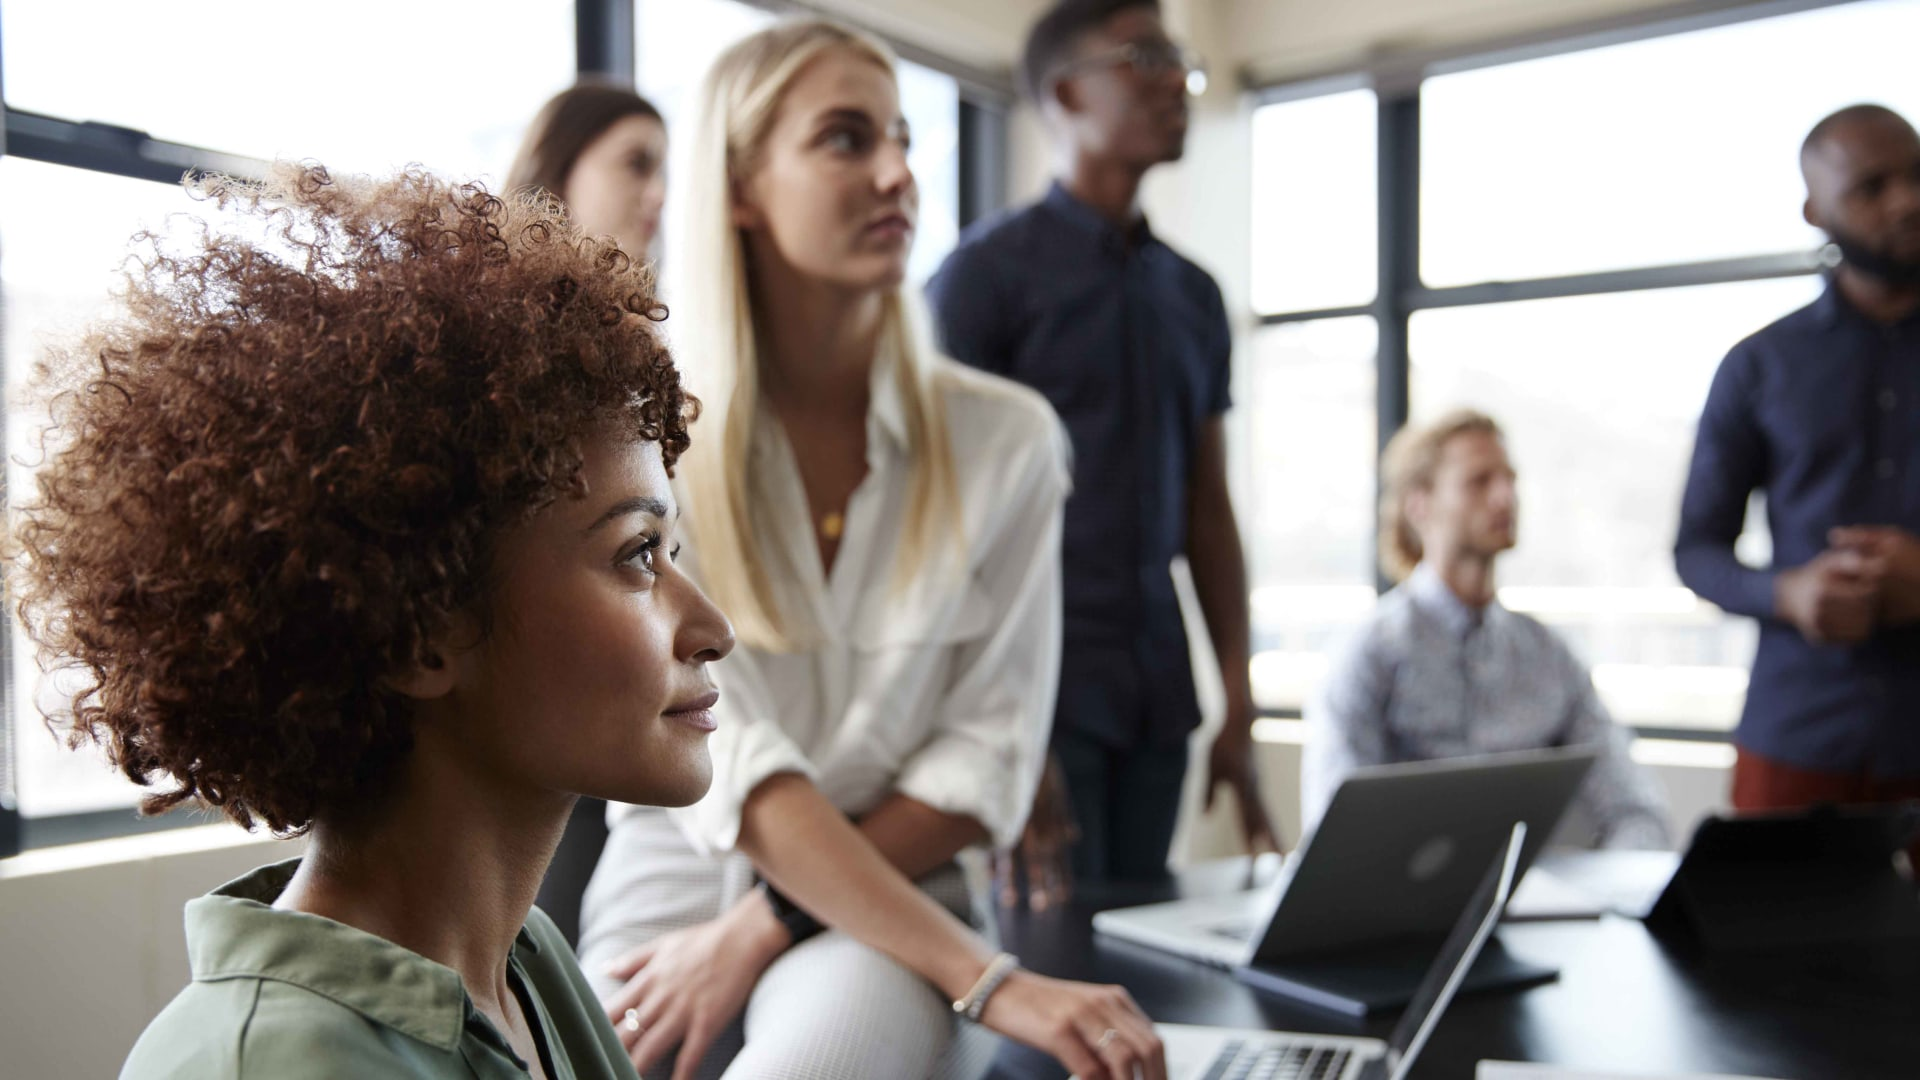 Should You Ask Diverse Members of Your Team to Help Attract More Diverse Talent?